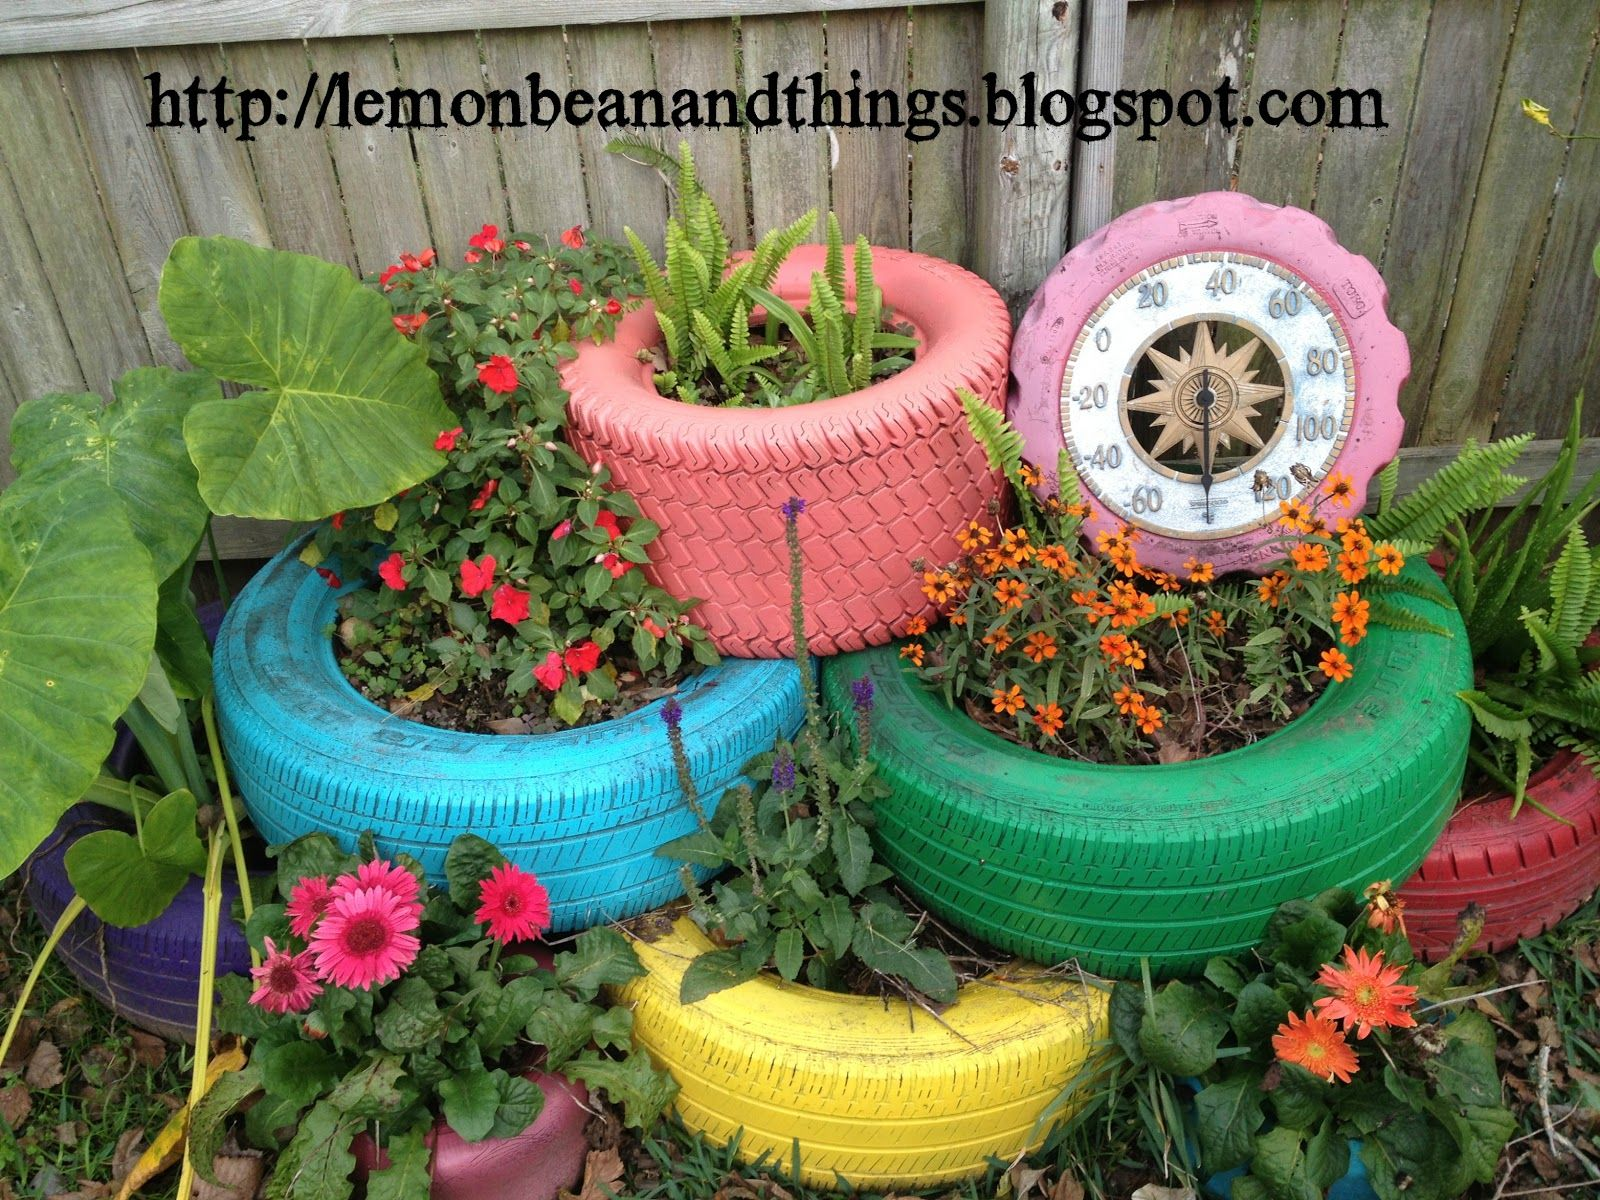 I saw the same photo on pinterest that everyone else saw for Car tire flower planter